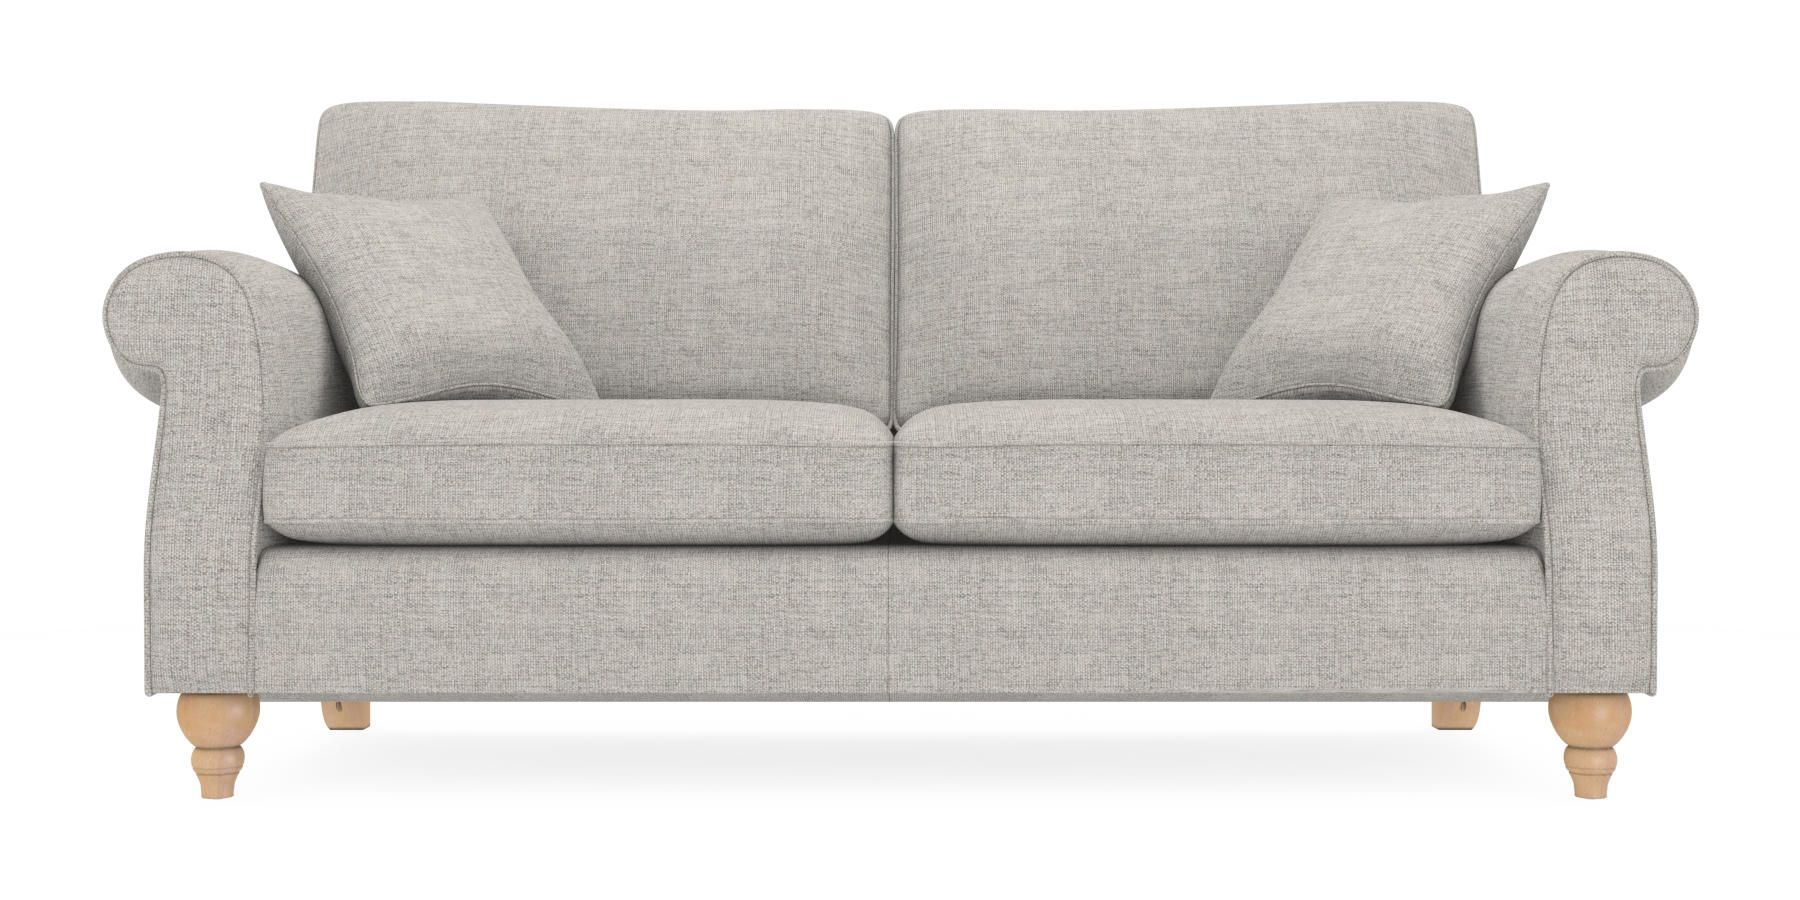 Grey Sofas Uk Next Buy Ashford Large Sofa 3 Seats Textured Weave Light Grey